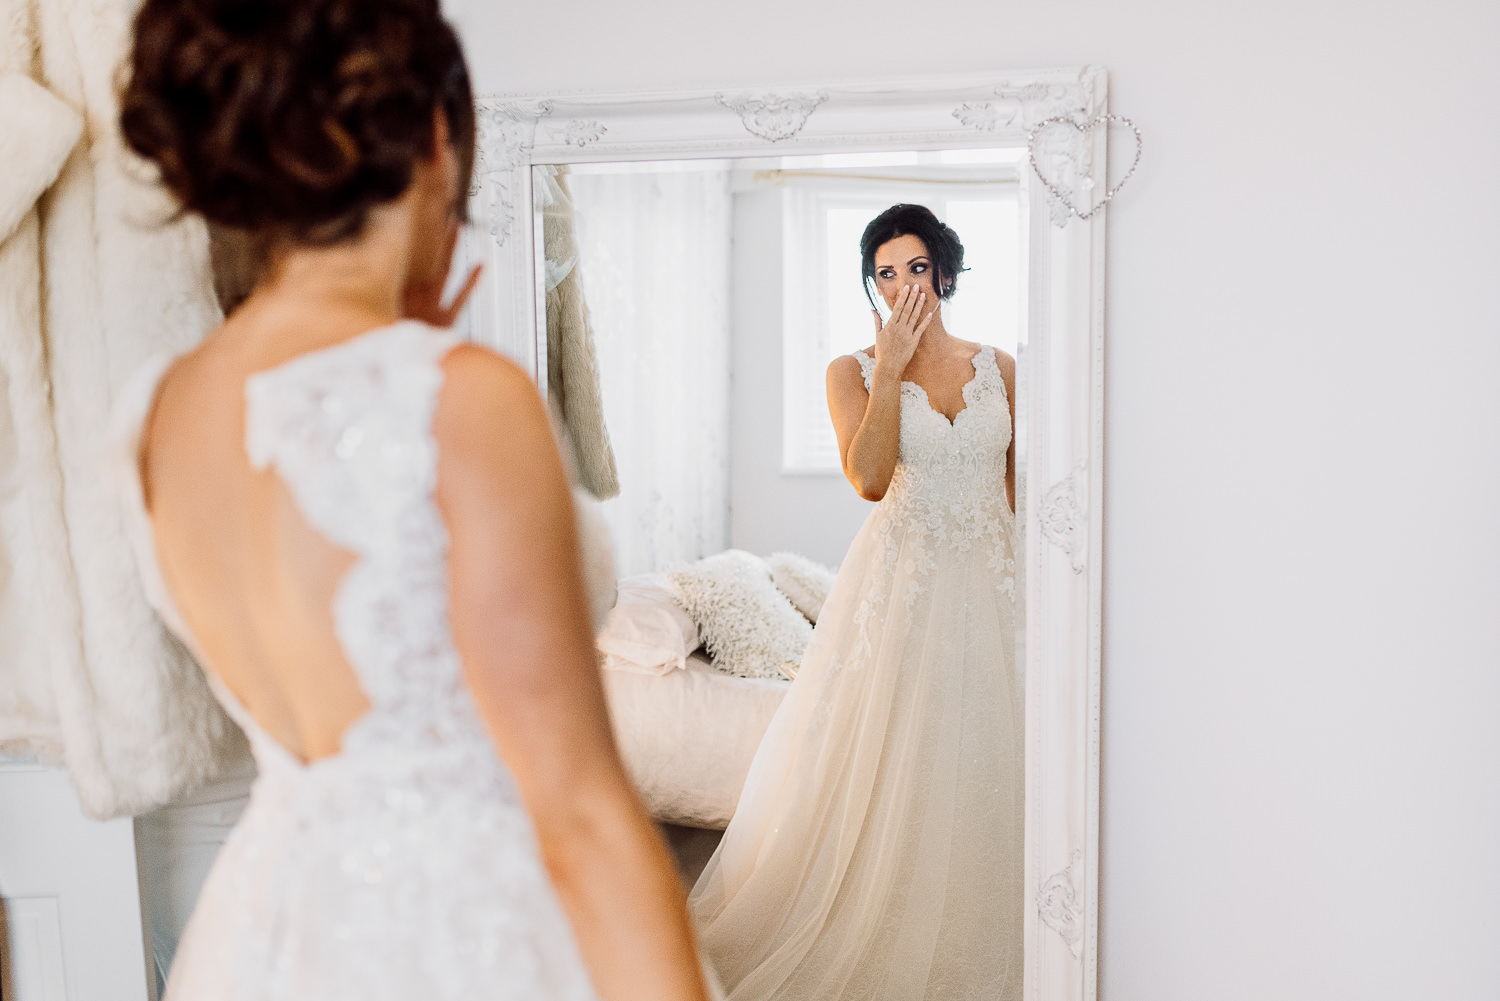 Bride putting on her wedding dress and looking in the mirror